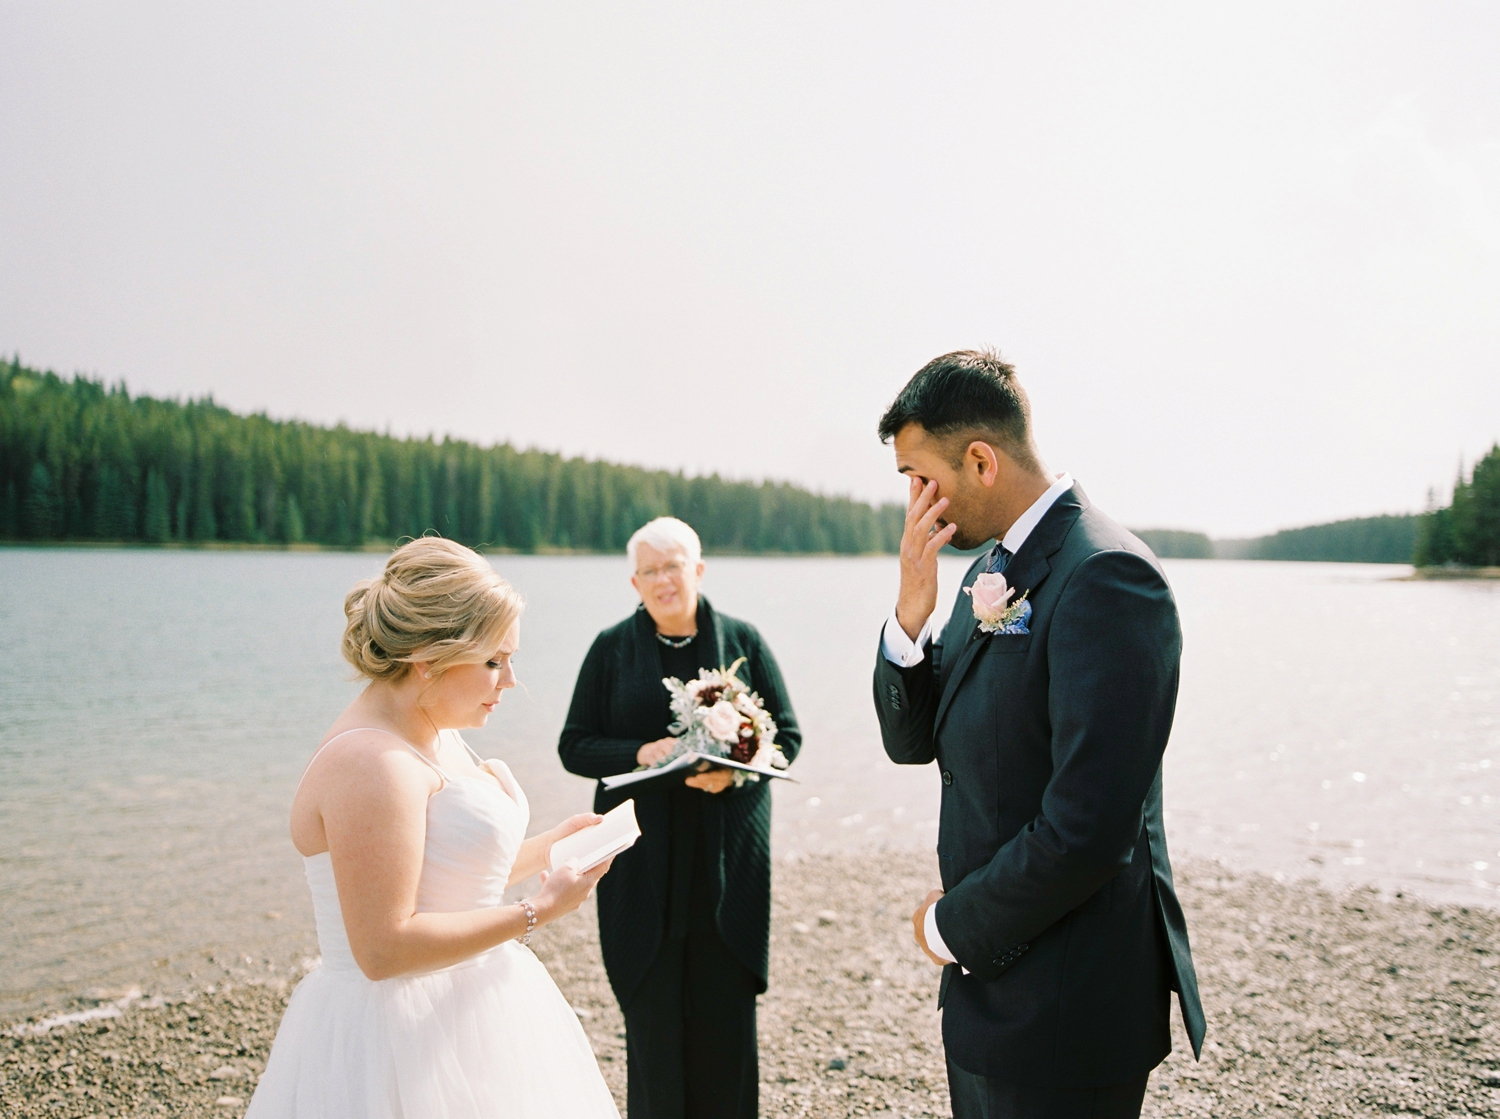 Calgary wedding photographers | banff wedding photographers | fine art film | Justine Milton Photography | wedding vows | elopement photographers | bride and groom ceremony